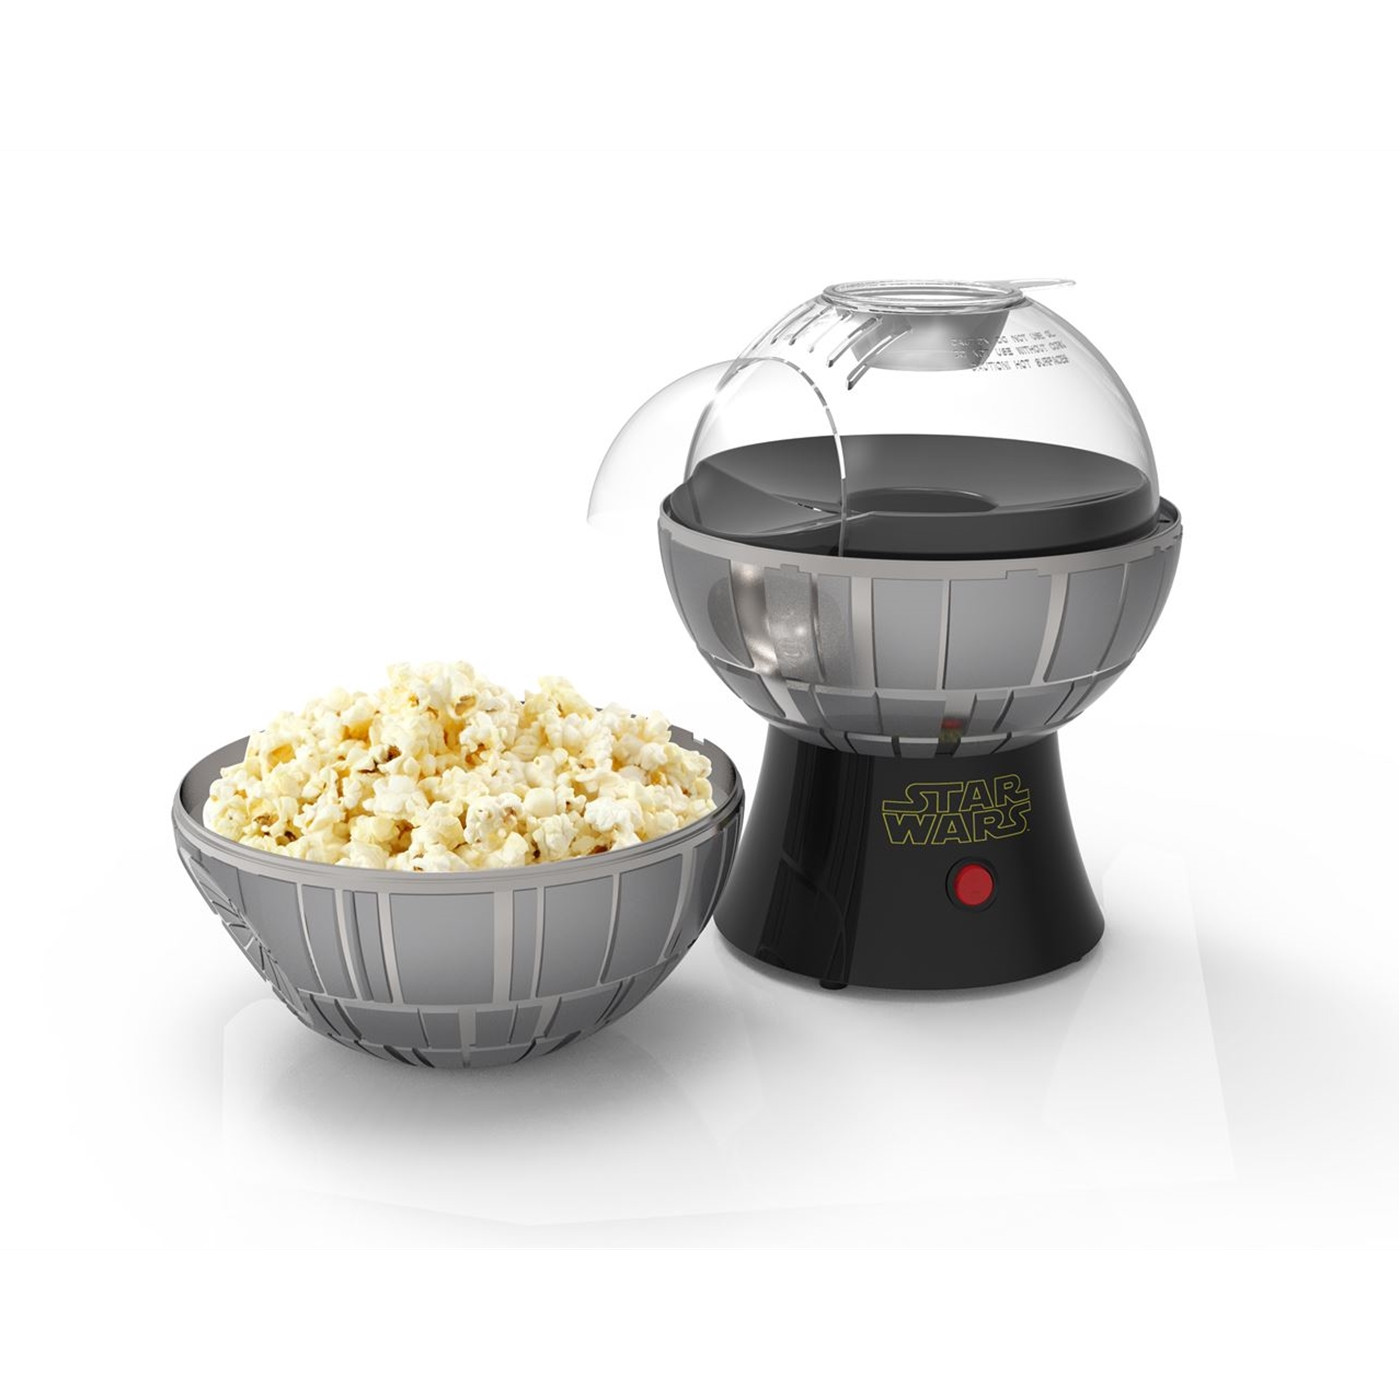 Death Star Popcorn Maker with Bowl